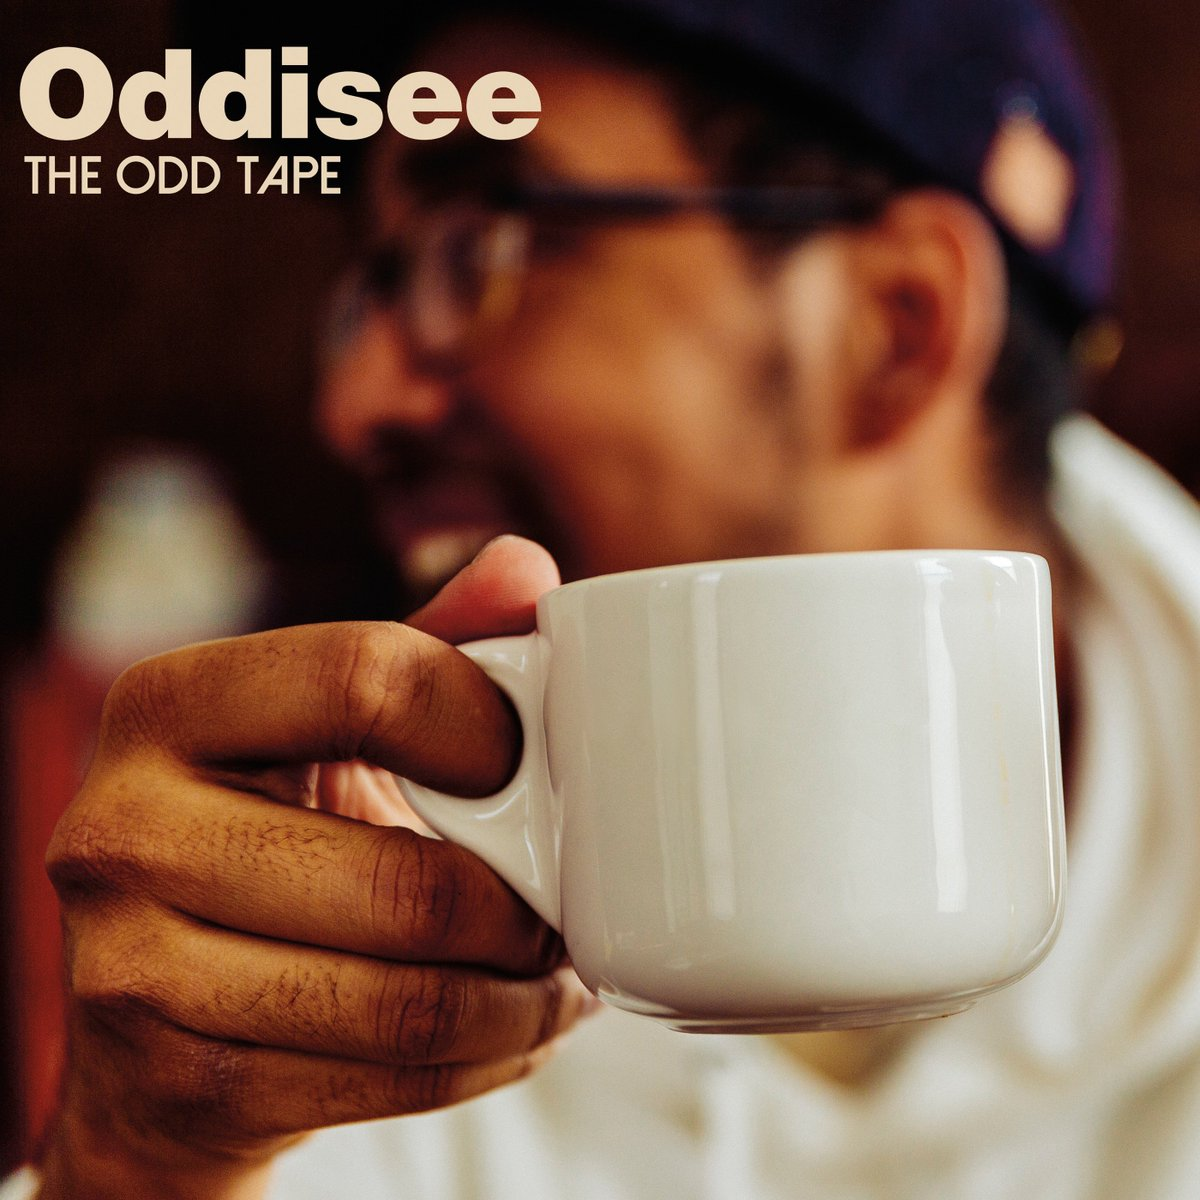 New & Noteworthy: @Oddisee The Odd Tape (Out Now!) https://t.co/81WwVZrl2o https://t.co/dG6tdRhs2L